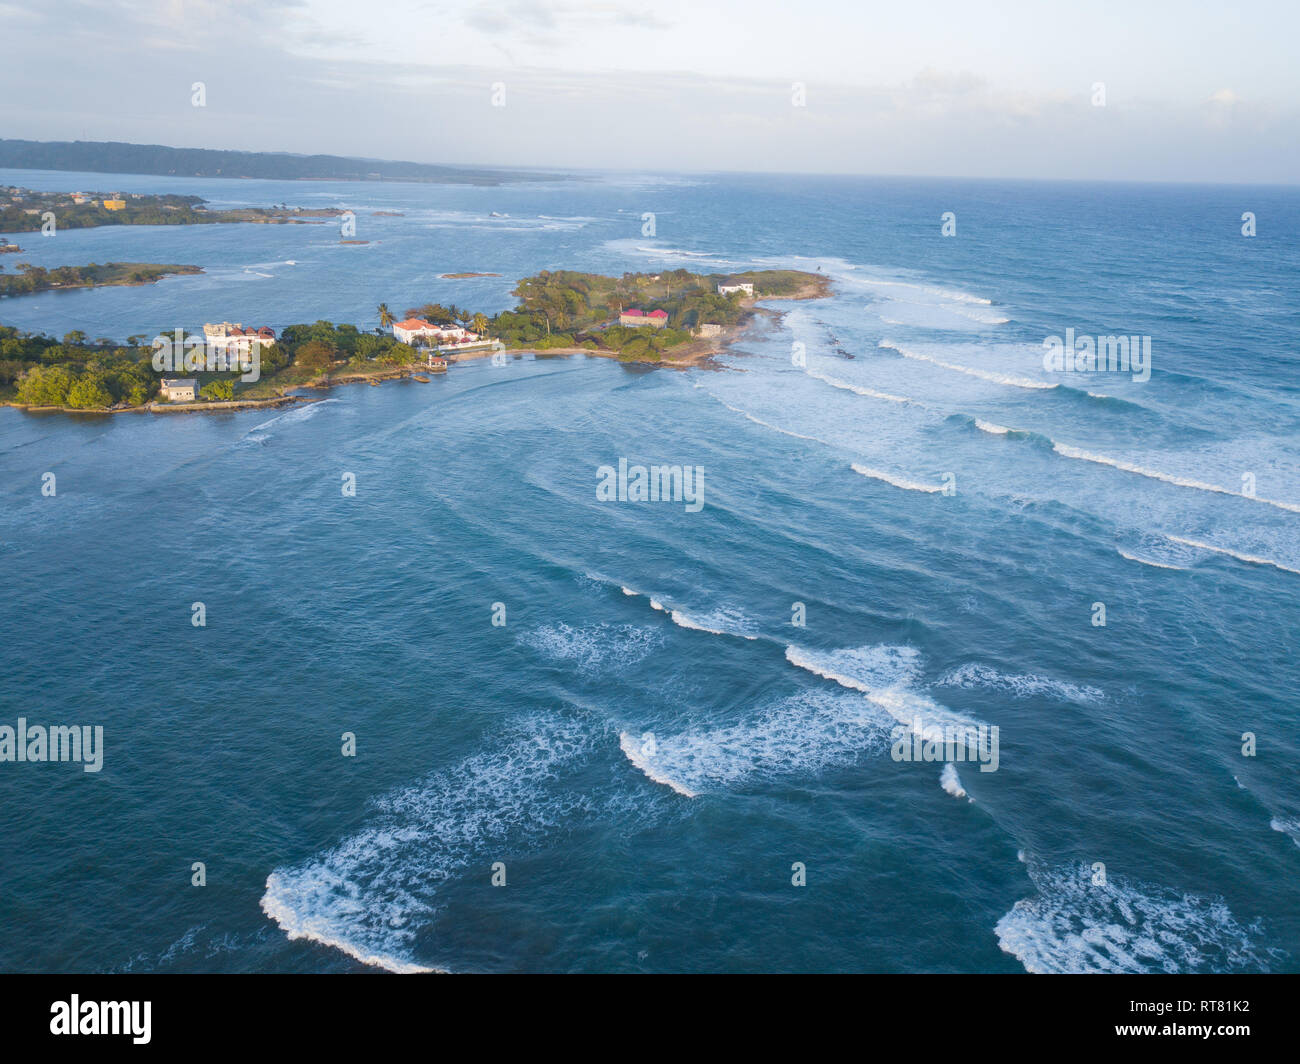 Aerial Drone shot of Jamaica, showing the Caribbean sea and coastline from above. - Stock Image